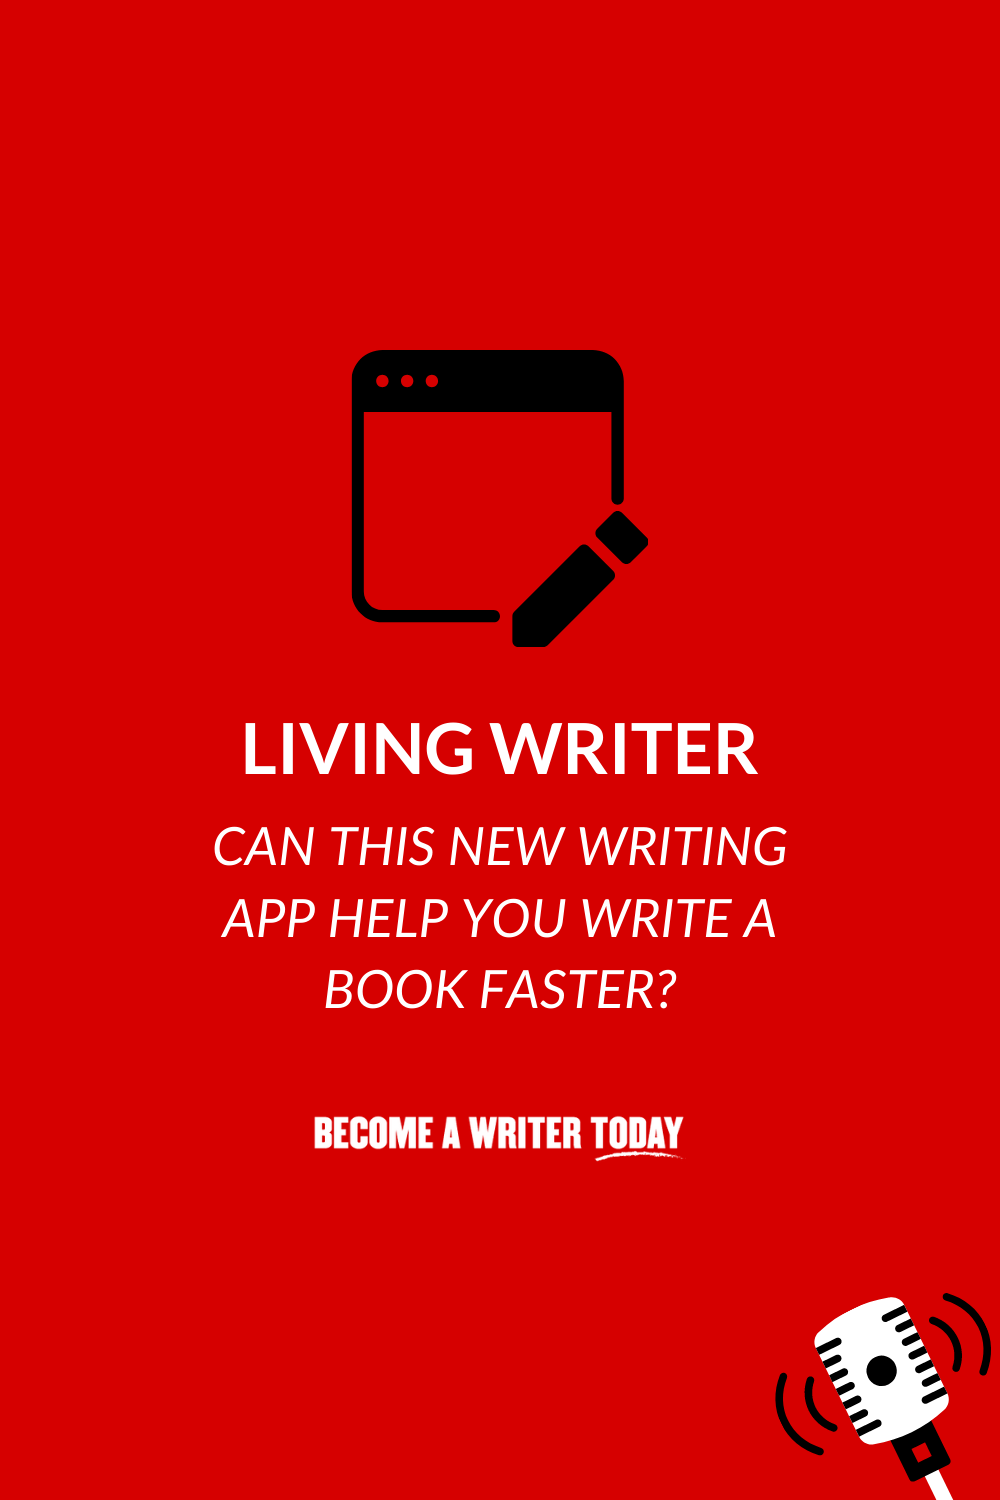 LivingWriter: Can This New Writing App Help You Write a Book Faster?